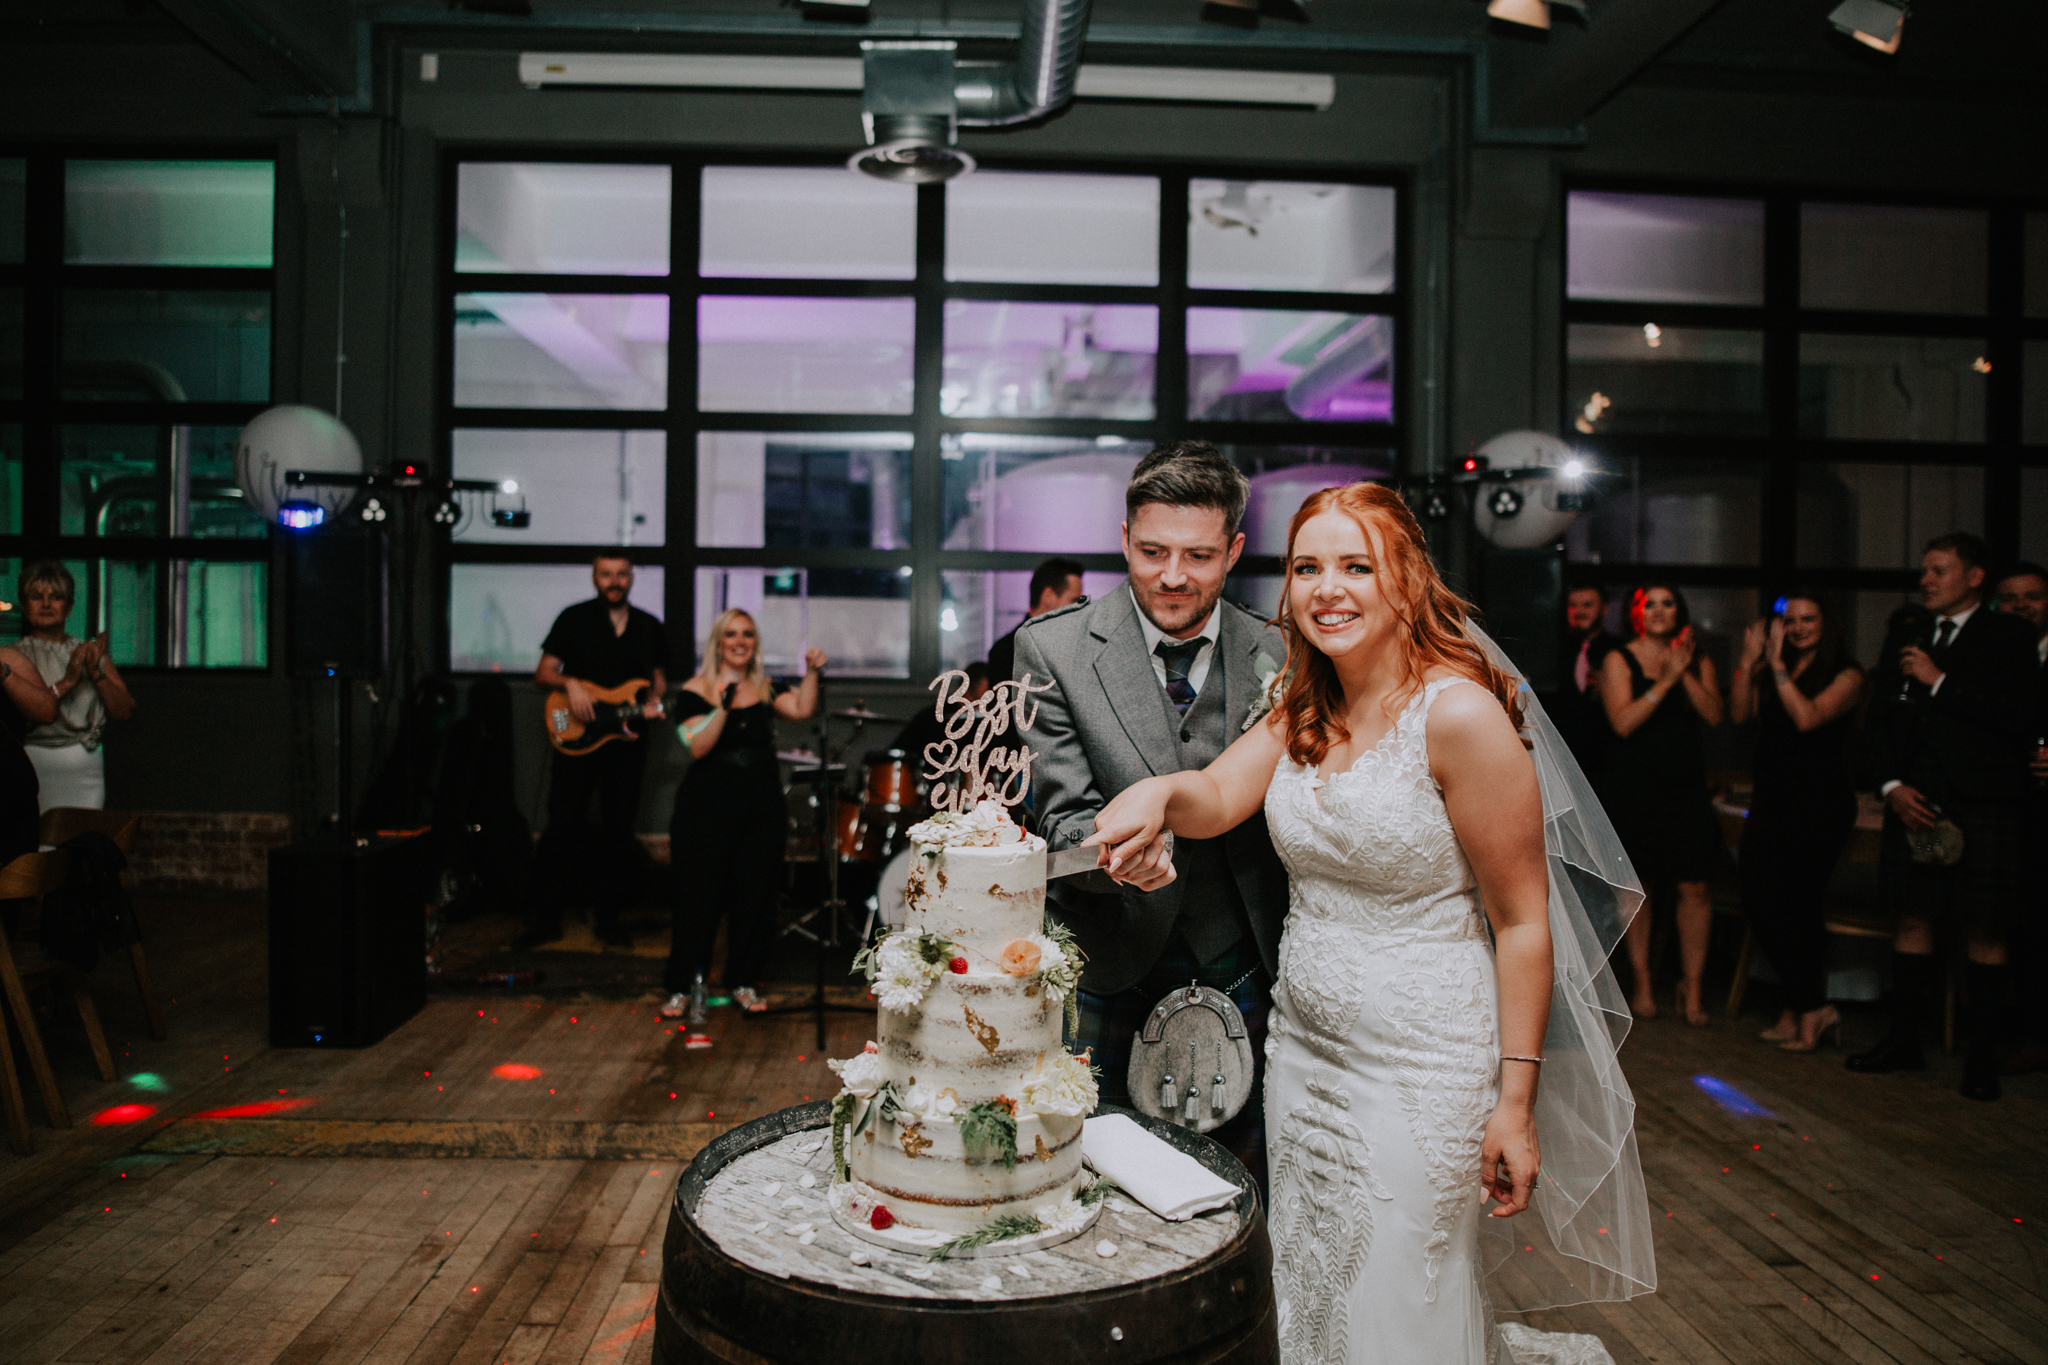 The couple is cutting the semi-naked cake at the West Brewery